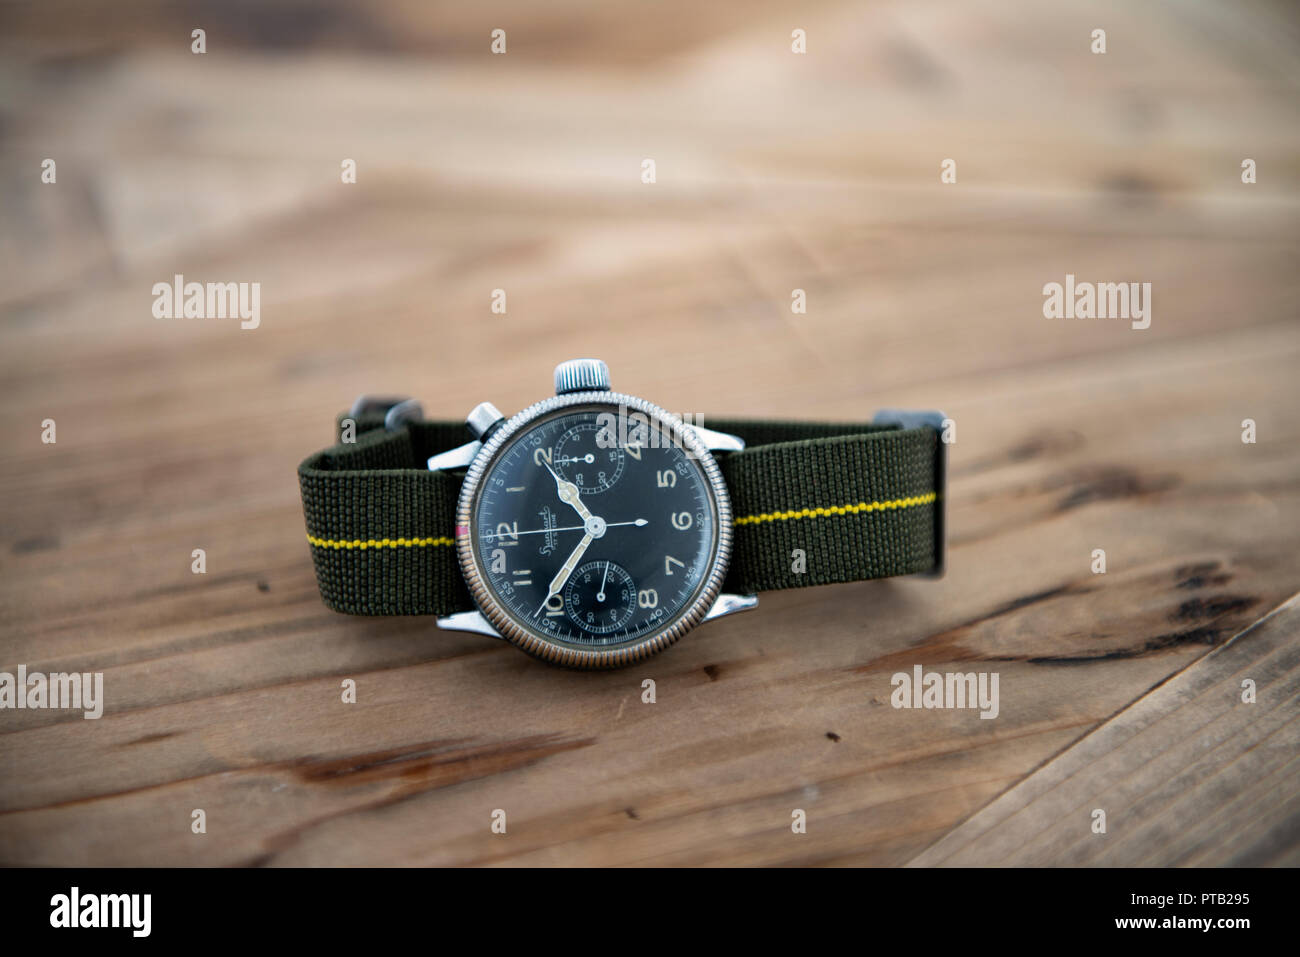 Hanhart calibre 40 single pusher chronograph issued to the Luftwaffe in world war 2 - Stock Image